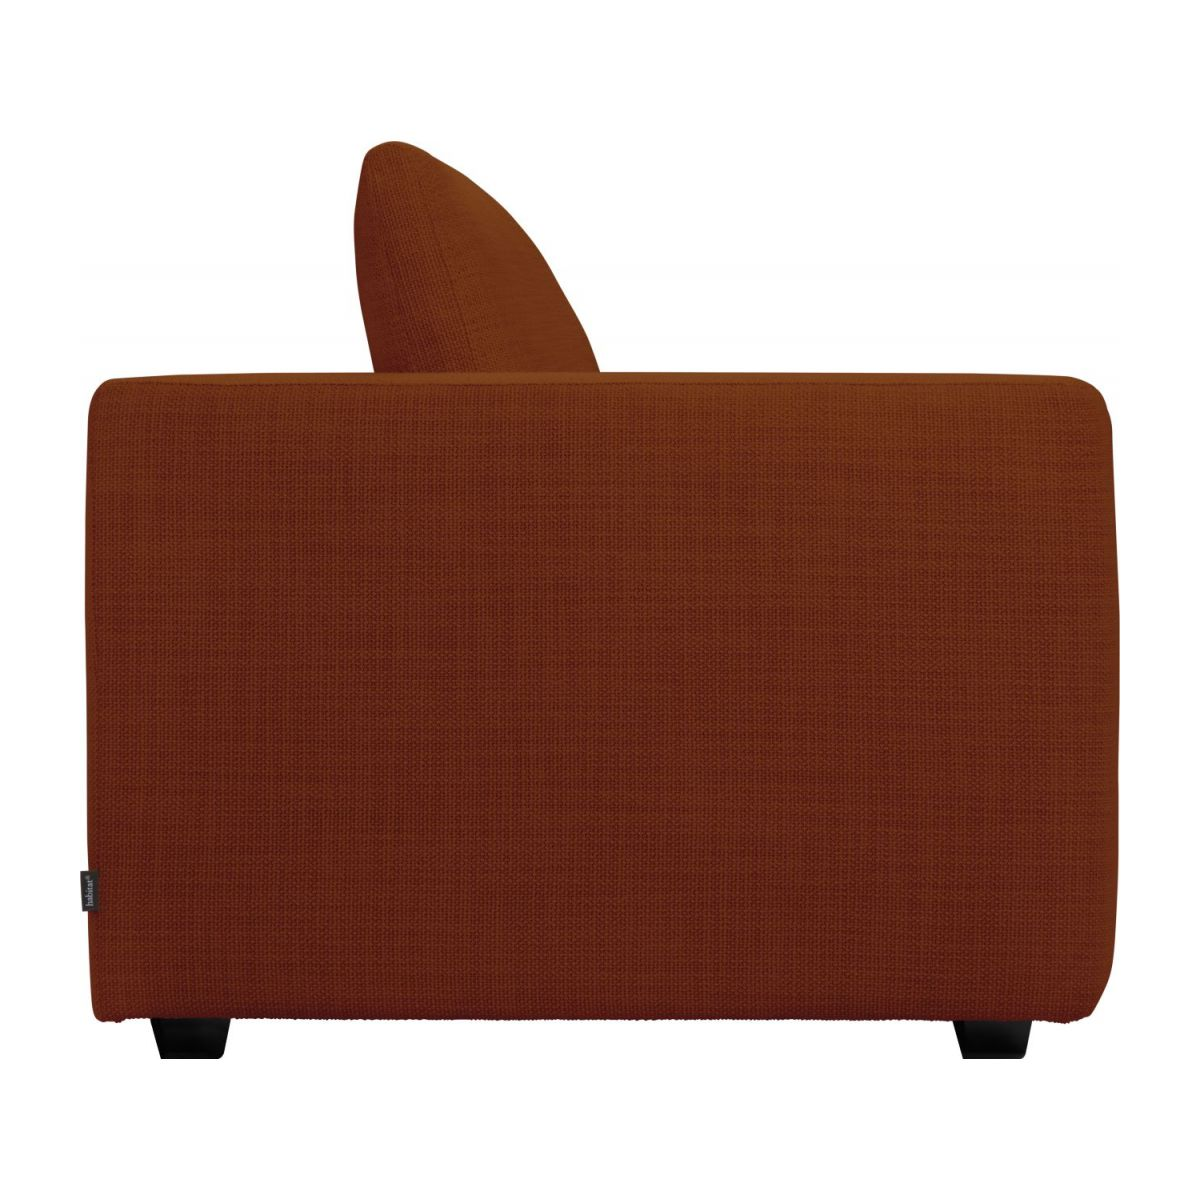 1,5 seater sofa with left armrest in Fasoli fabric, warm red rock n°5